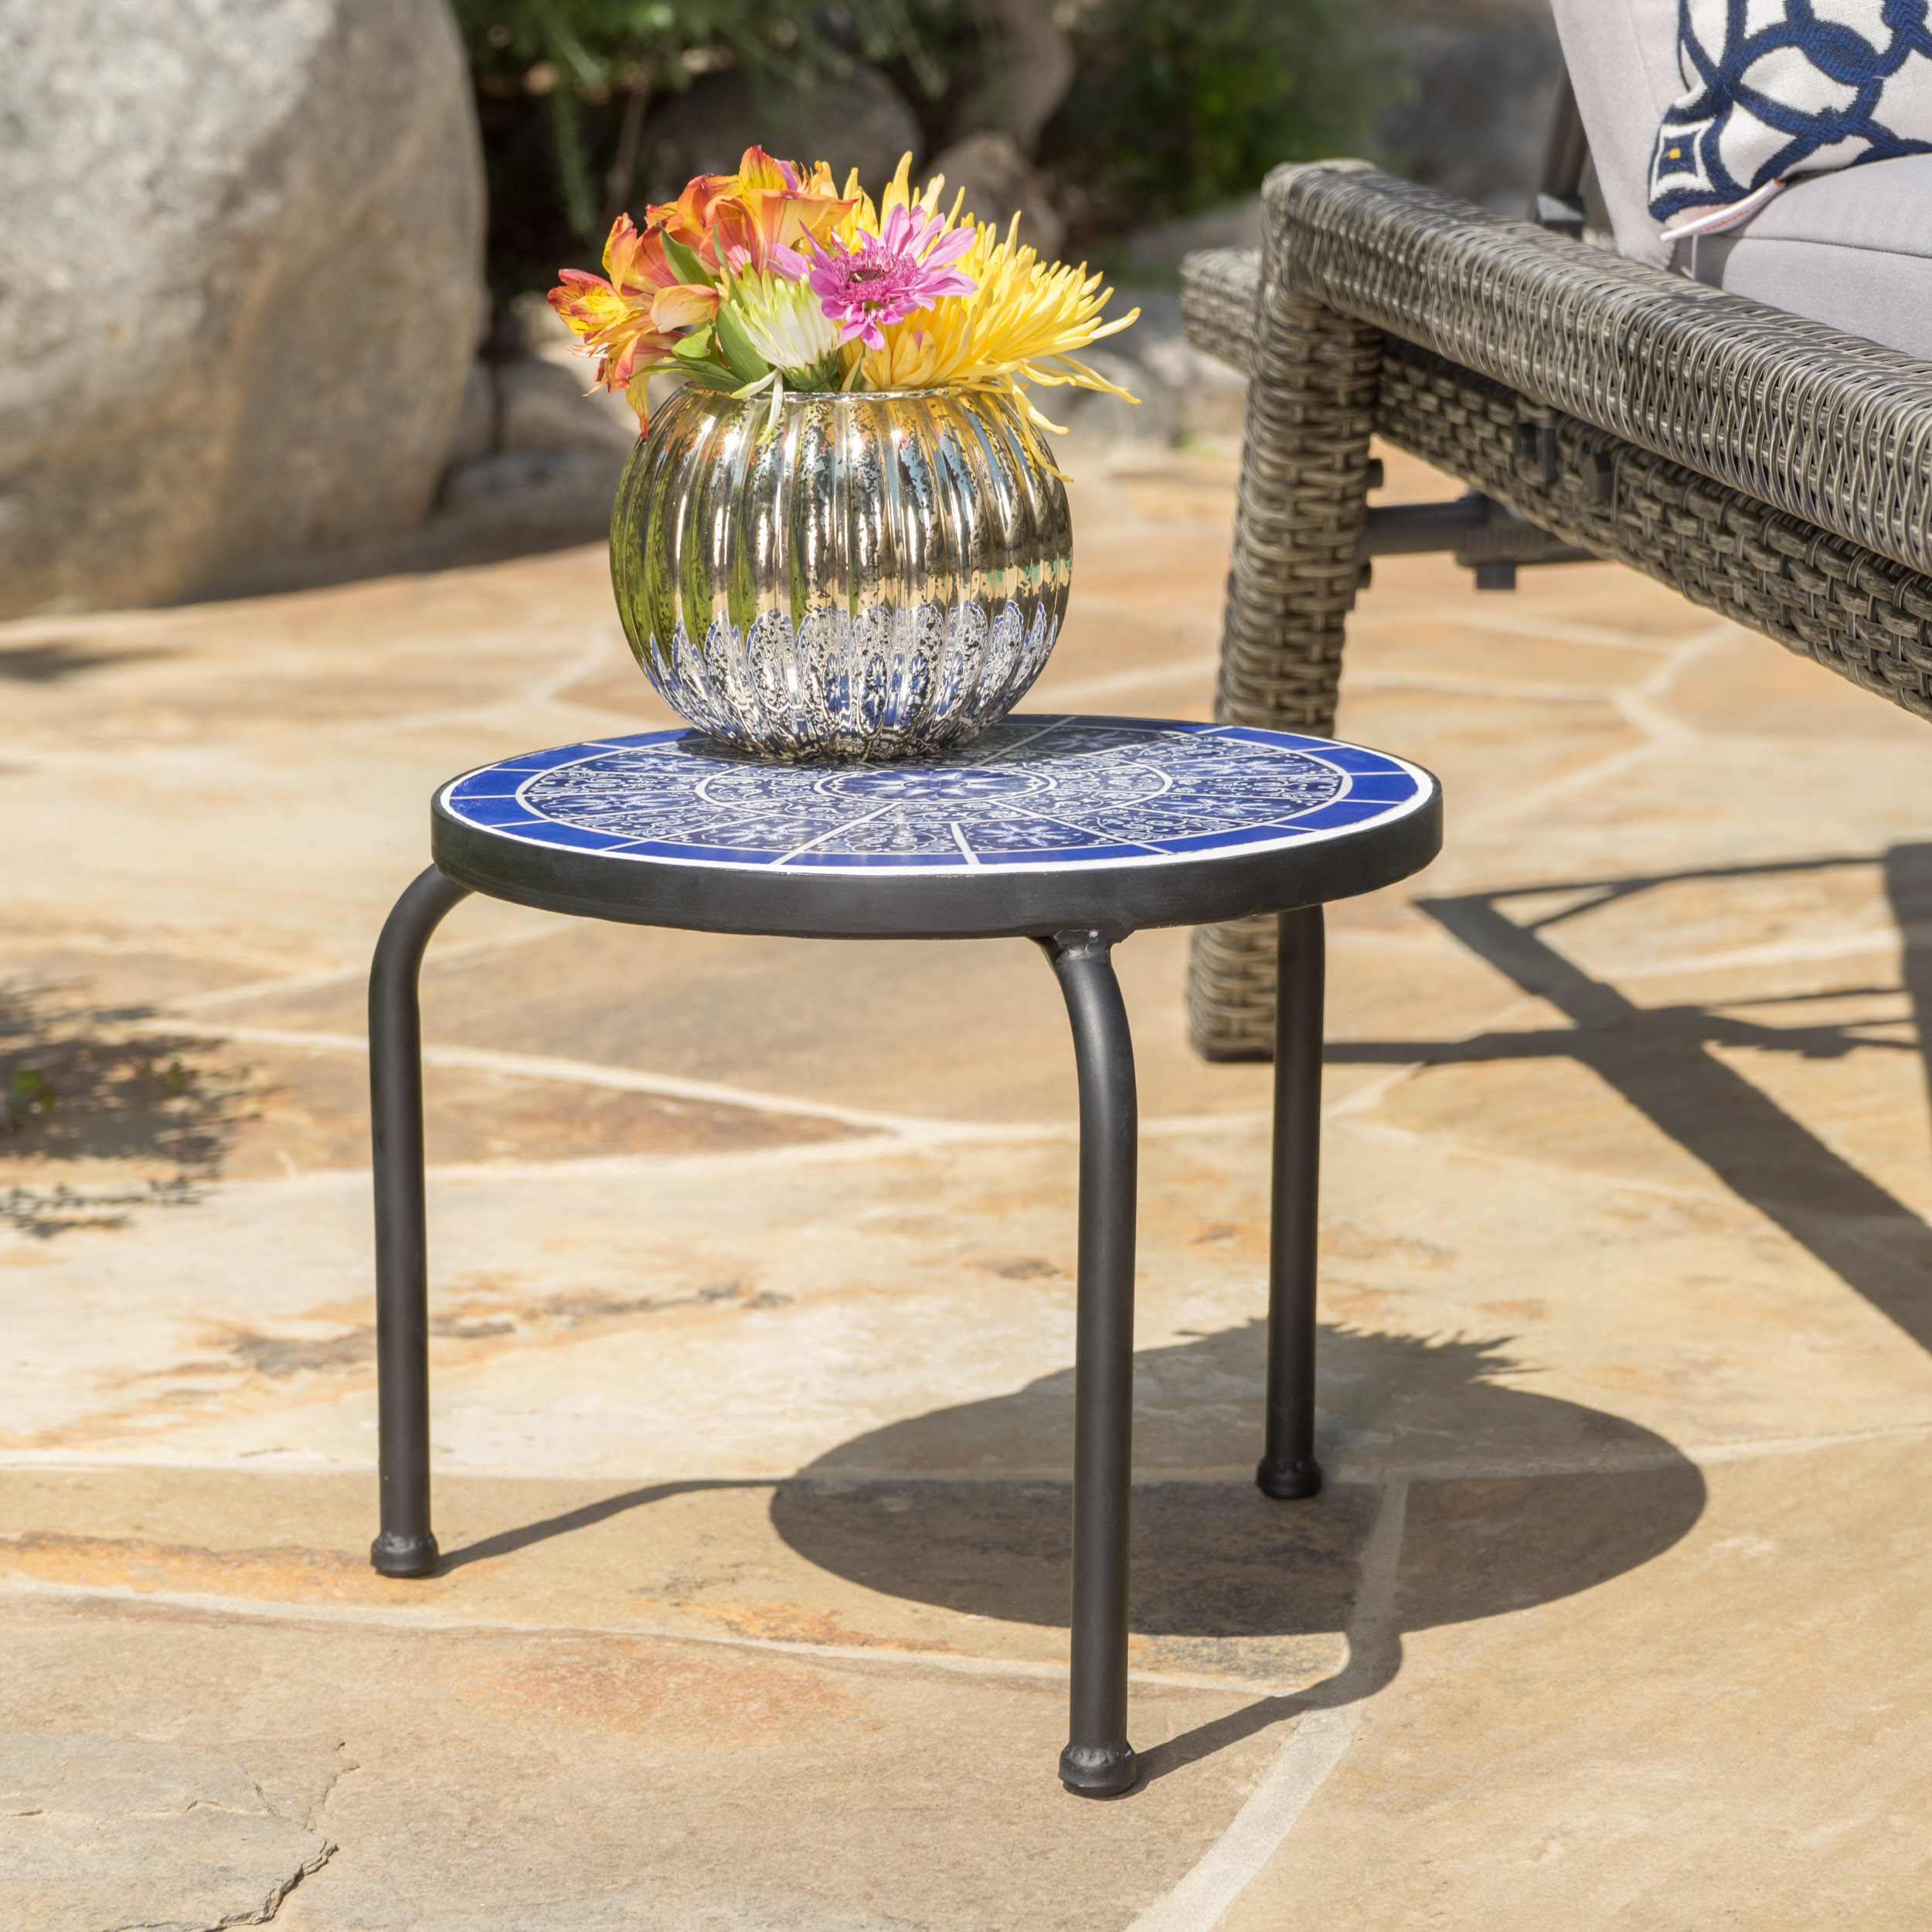 bryan outdoor ceramic tile side table with iron frame blue and accent white nautical bedroom lamps kitchen knobs pulls umbrella stand weights sofa drawers brass target bar tessa